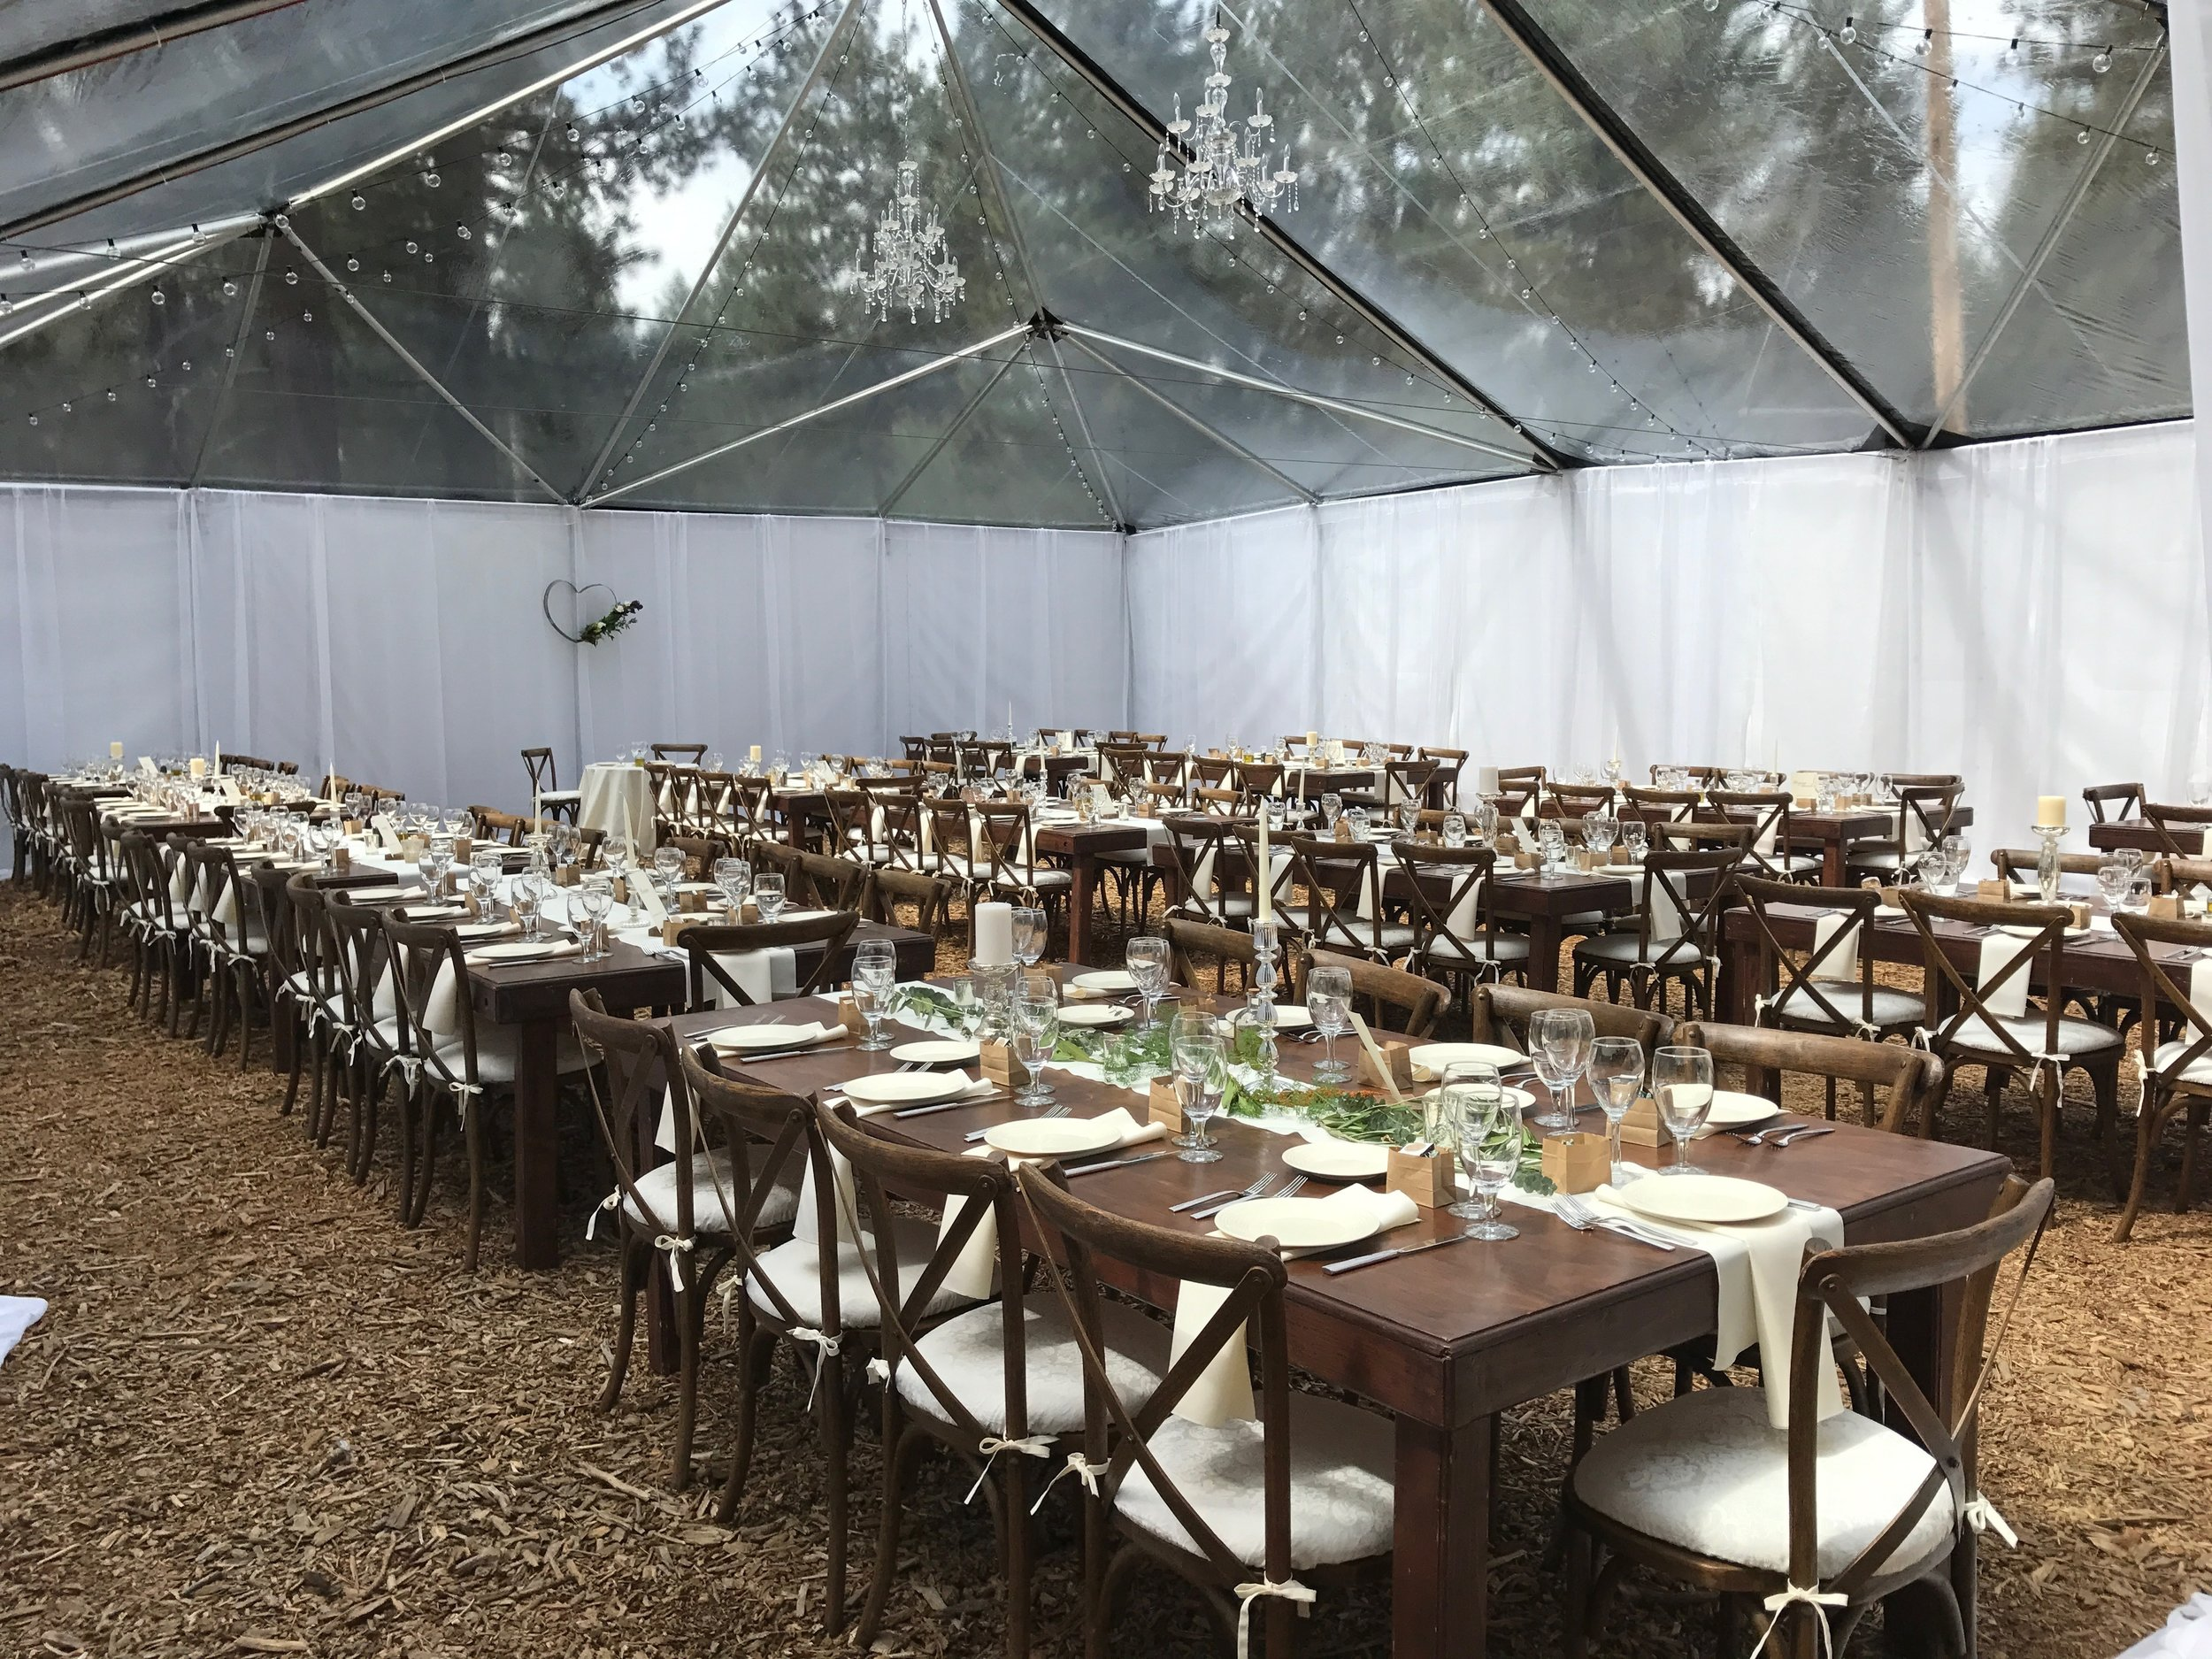 Tables, Chairs & Dishware provided by Camelot Party Rentals